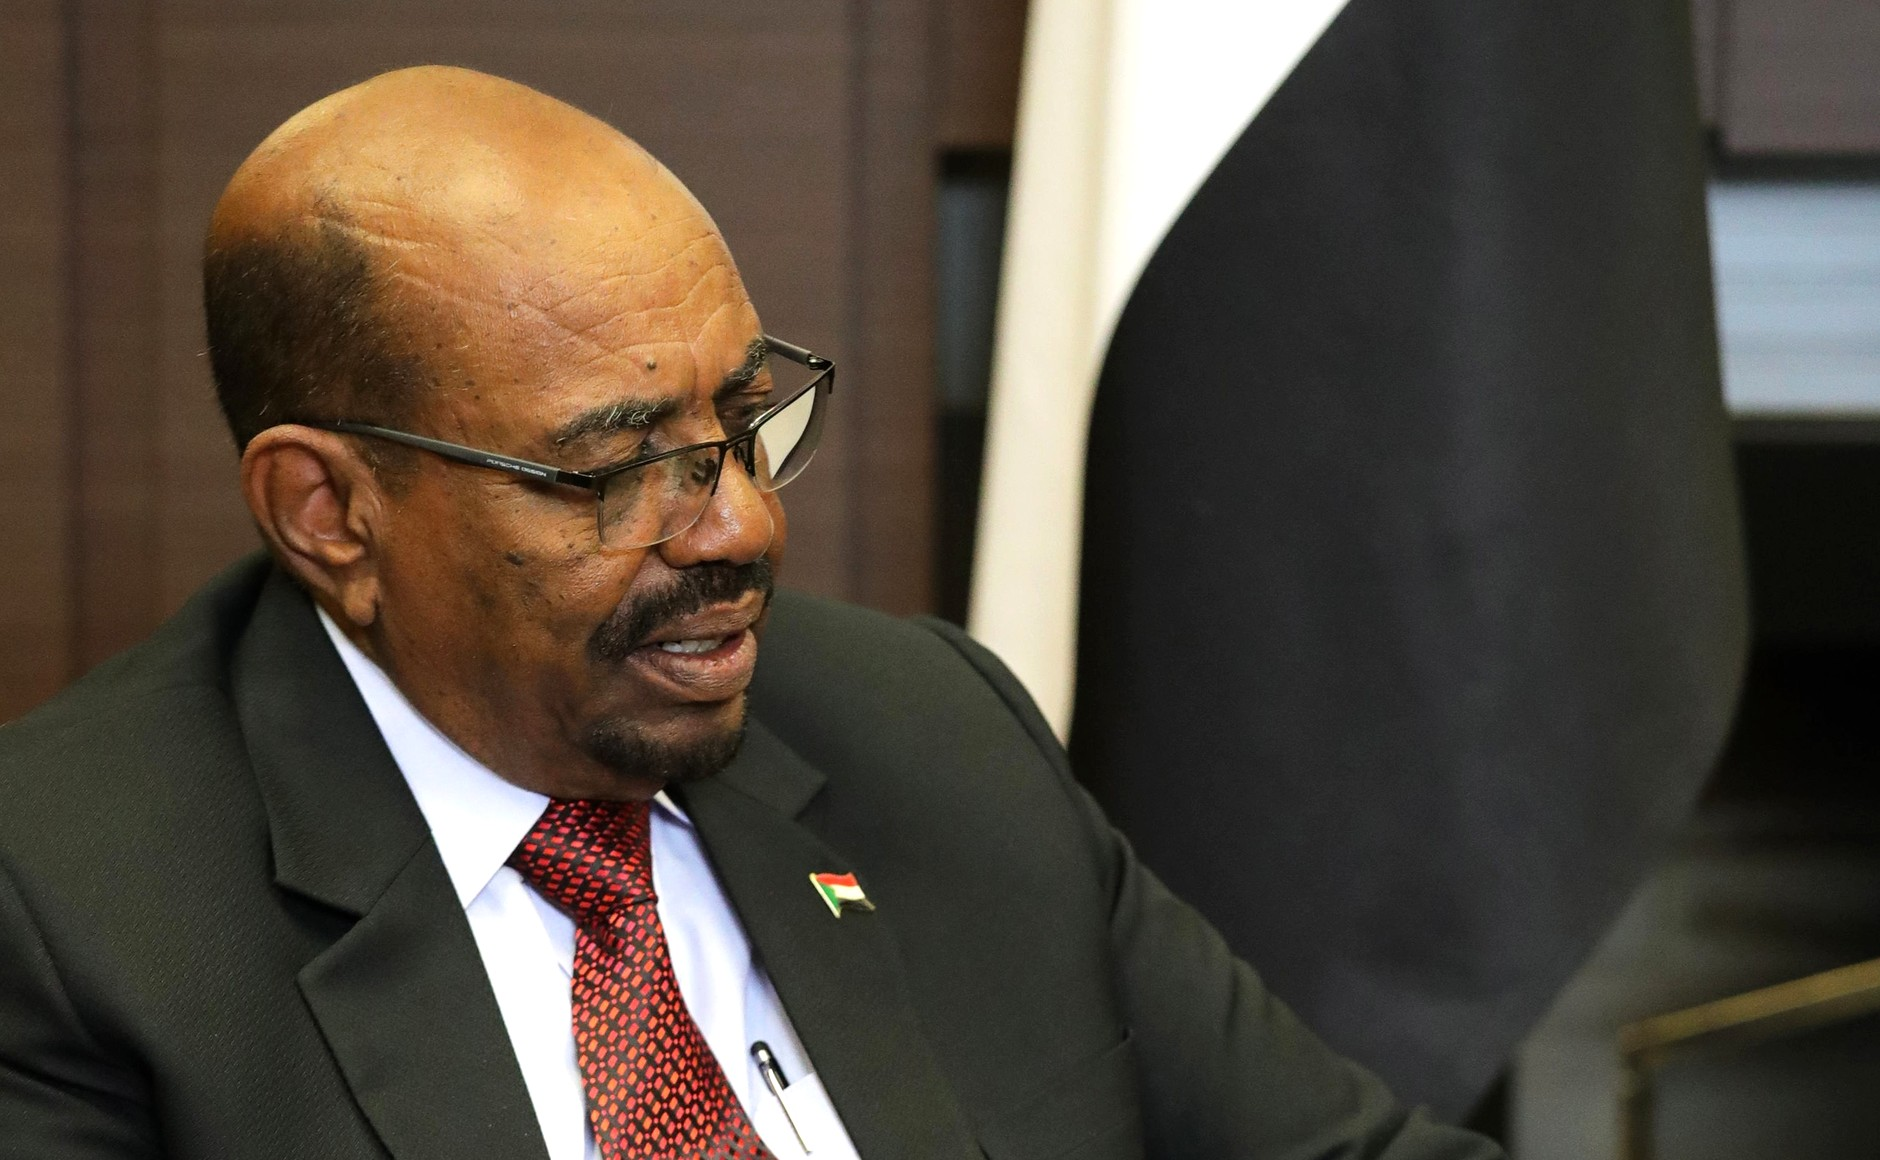 Omar al-Bashir's brothers arrested